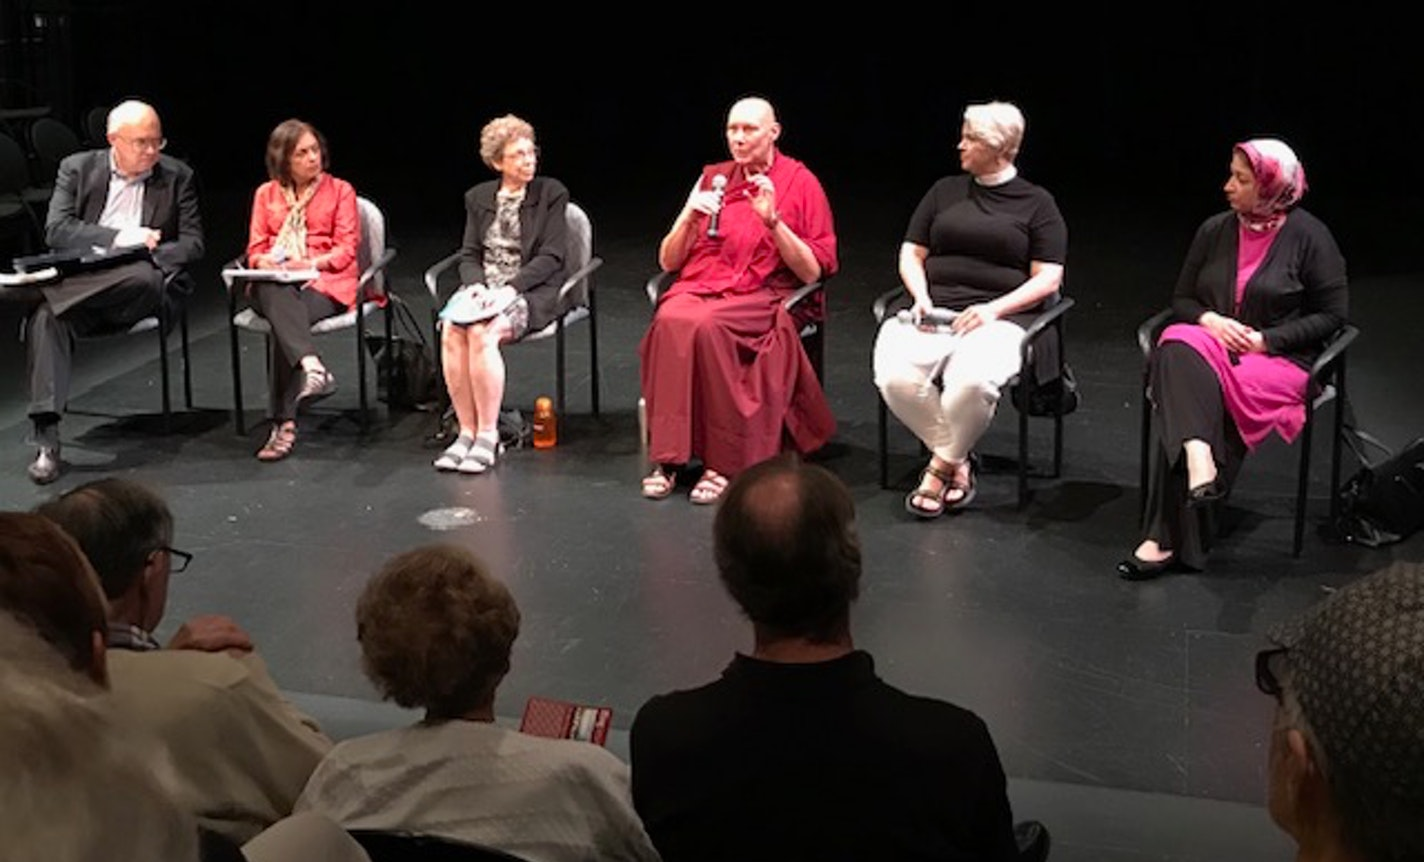 Interfaith Panel on Death and Dying